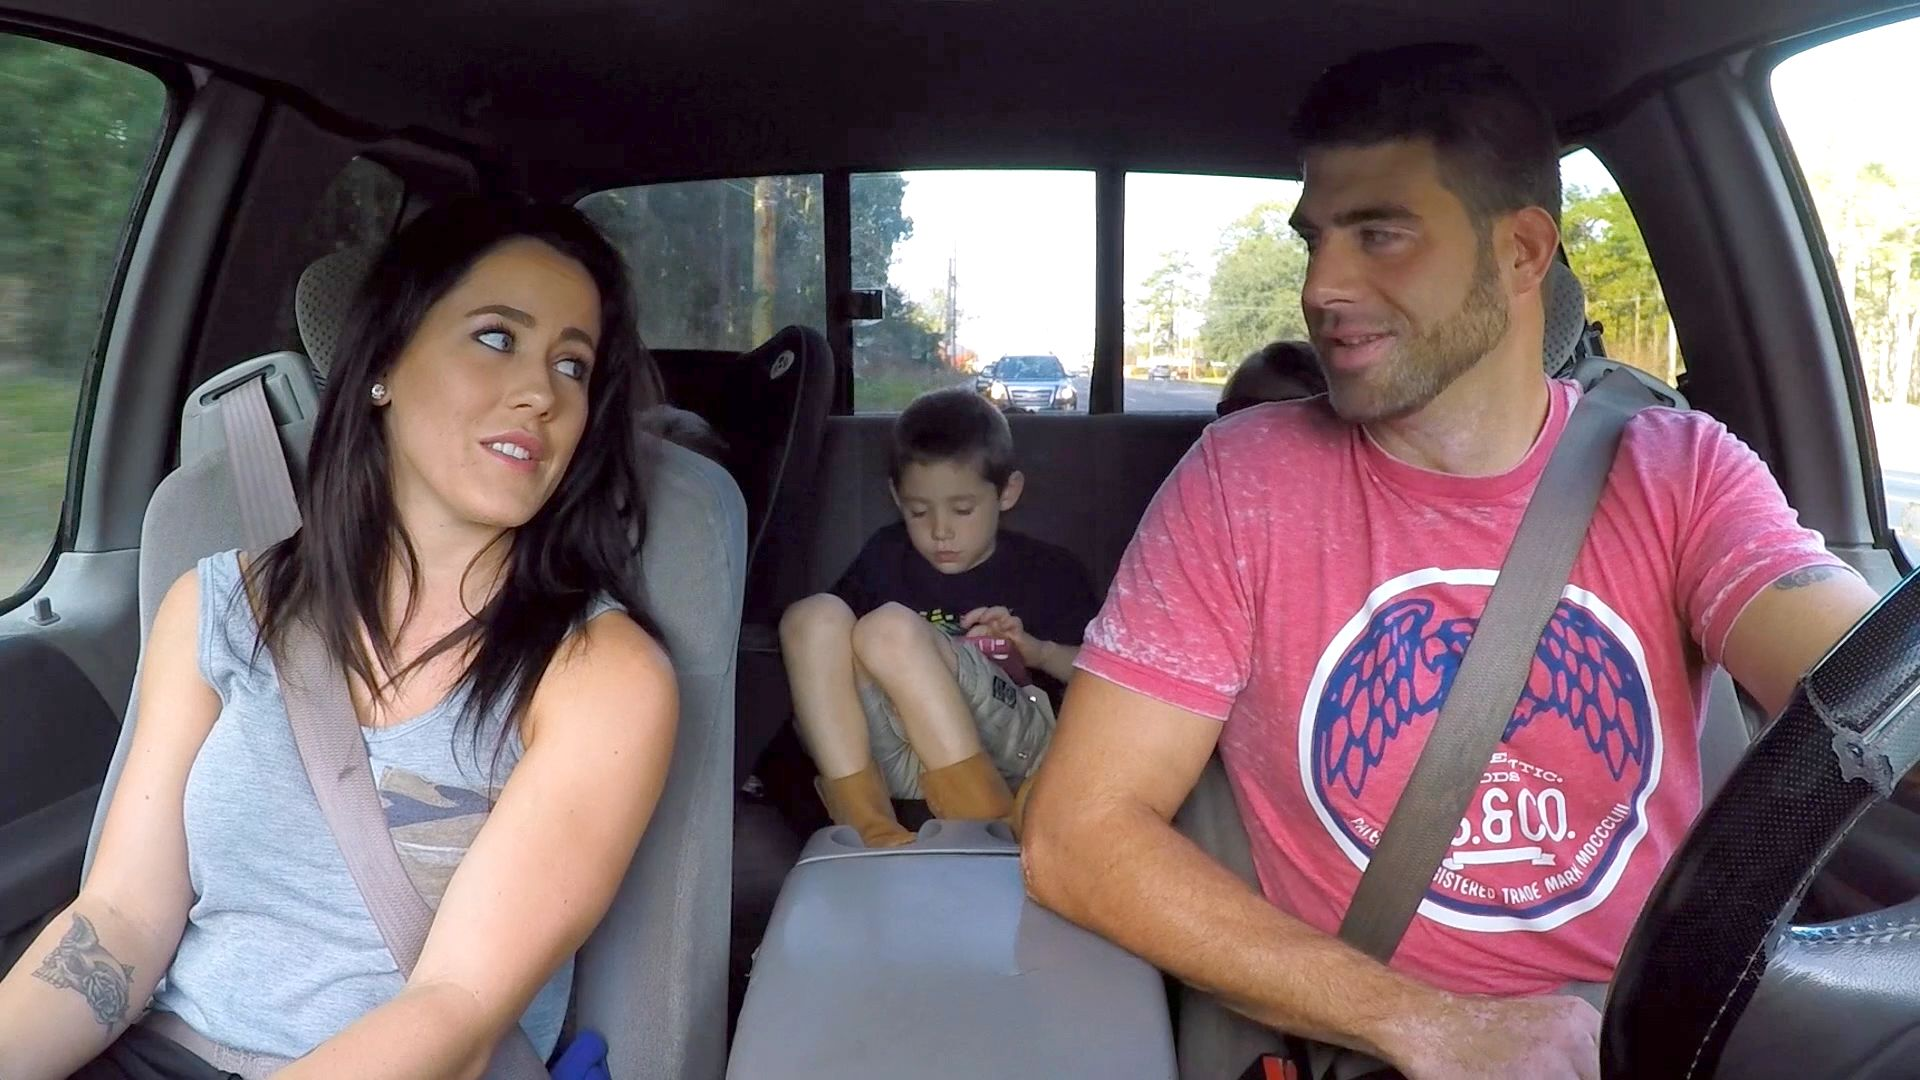 CRIME CAPER(s): it more on teen mom share, thank